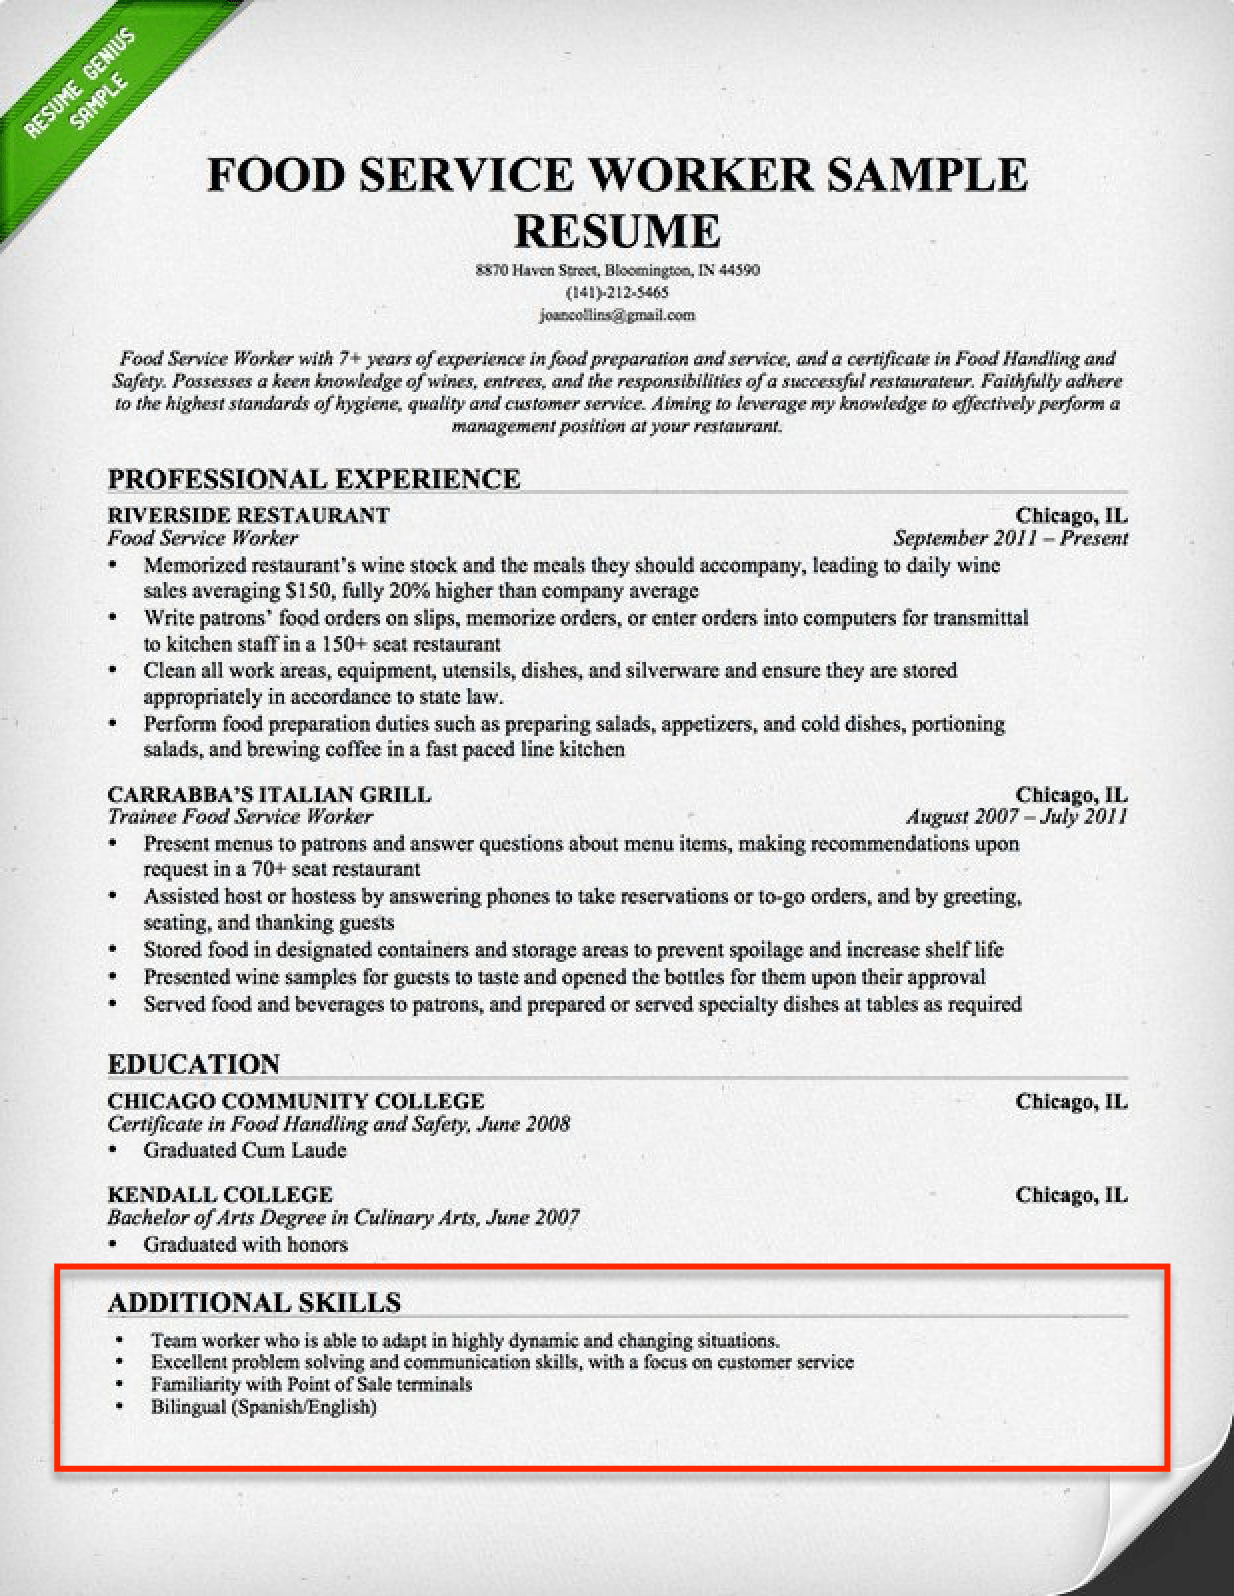 Skill Resume Format Resume Skills Section 250 43 Skills For Your Resume